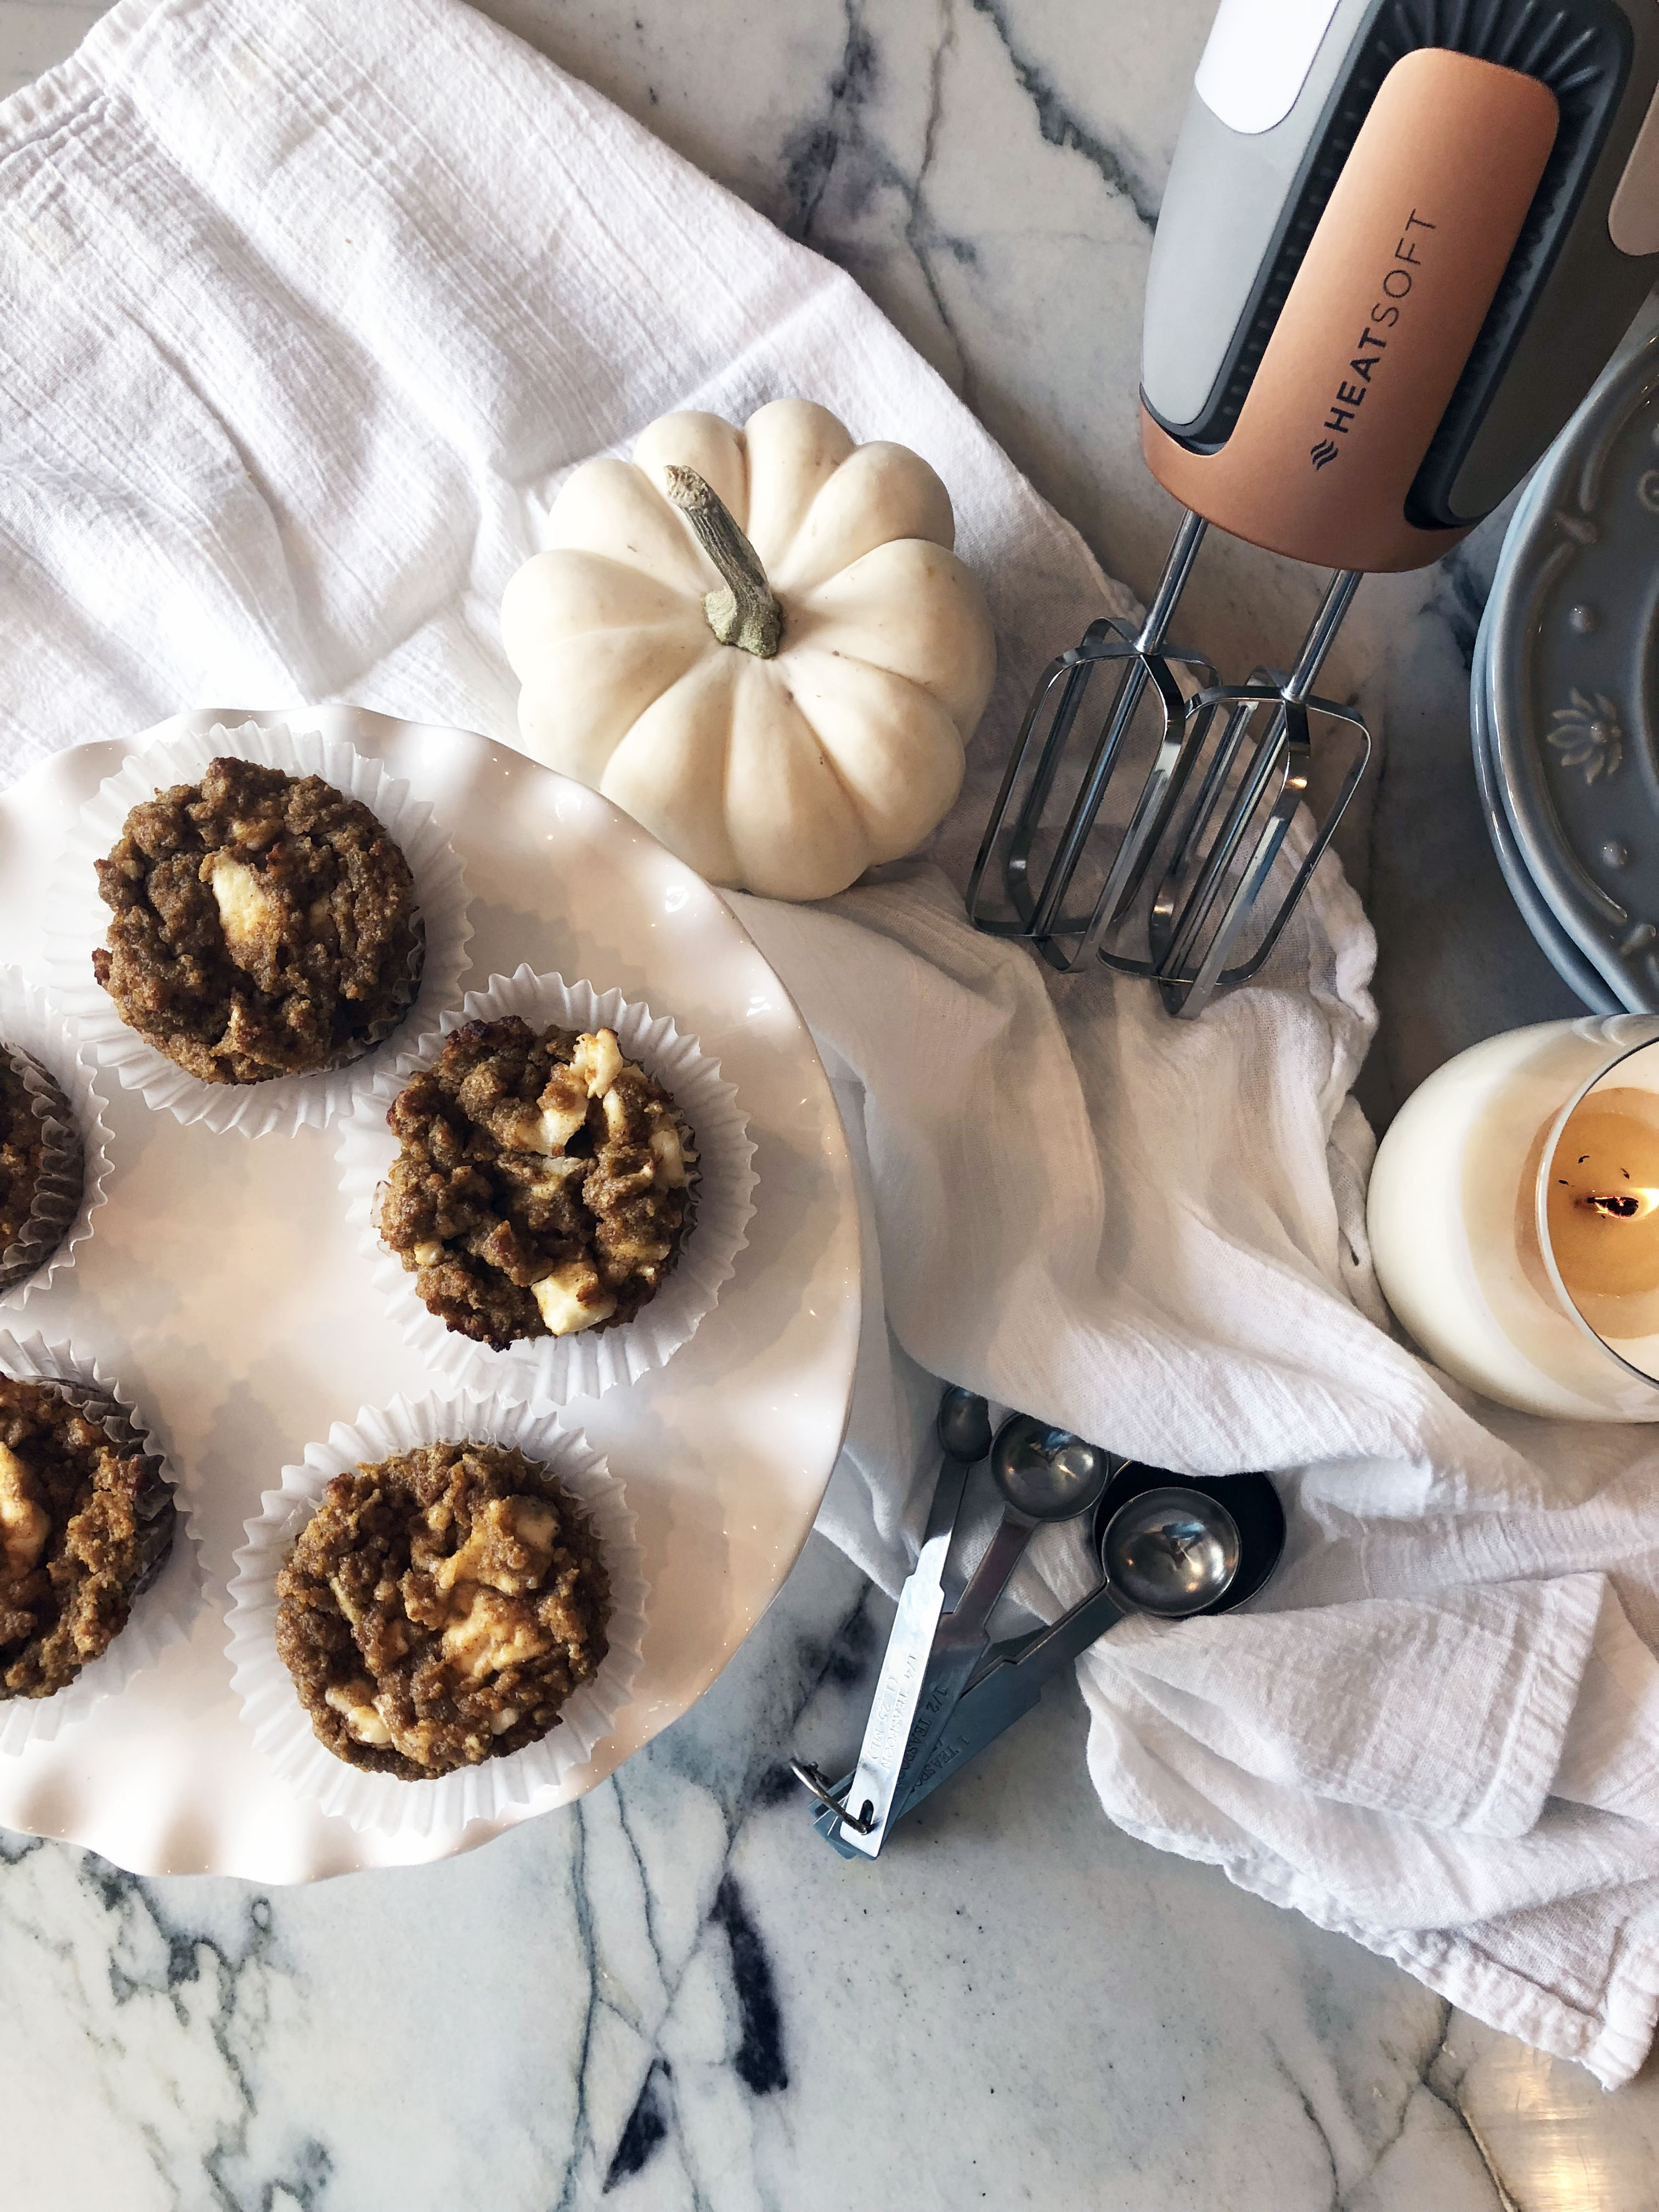 Low Carb, Keto Friendly Pumpkin Muffins with Cream Cheese Swirl by Mirabelle Creations